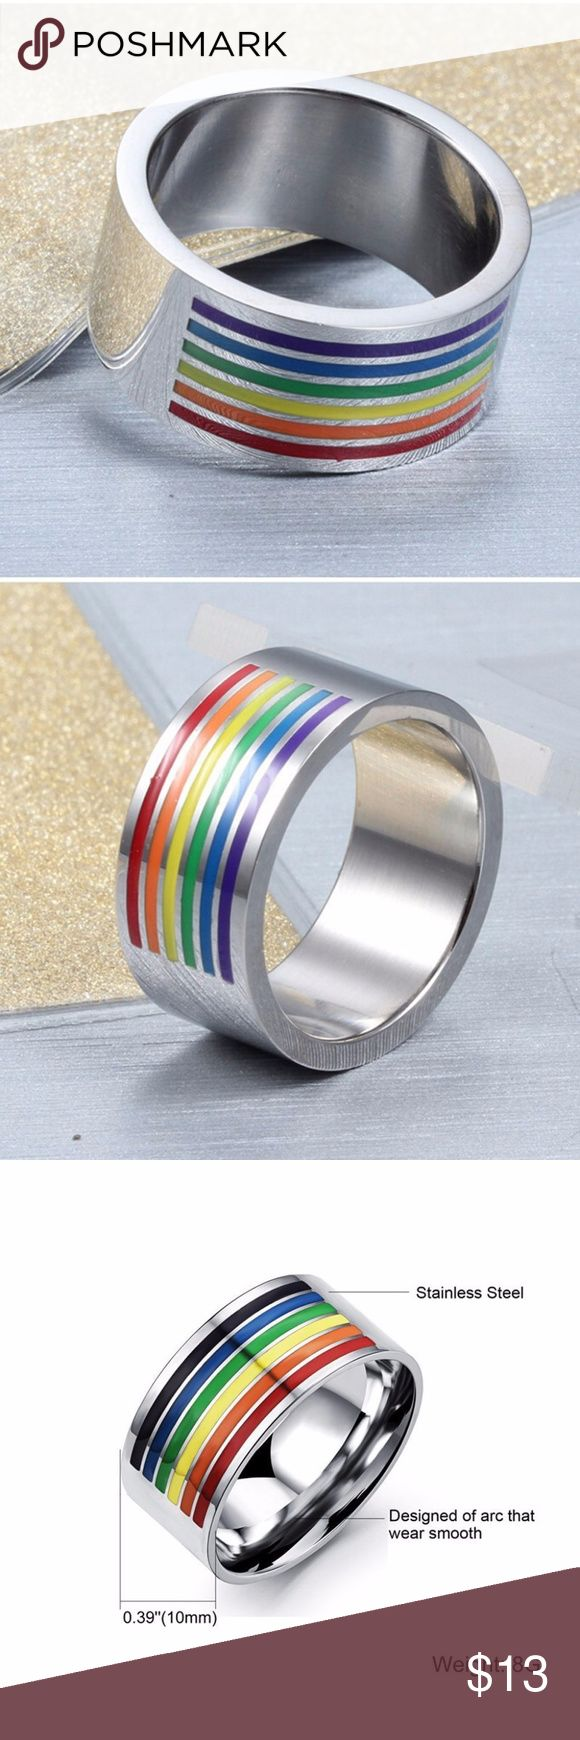 """Rainbow Striped Ring Gay WOMEN MEN STAINLESS STEEL MetaL: Stainless Steel  Ring Size: 7,8,9,10,11,12  Color: Silver&Rainbow Color  Main Stone: No Stone  Ring Width:10mm  Ring Width:0.39""""(1cm)  High Quality; Won't fade  Well made and sturdy 1PC+GIFT BAG Jewelry Rings"""